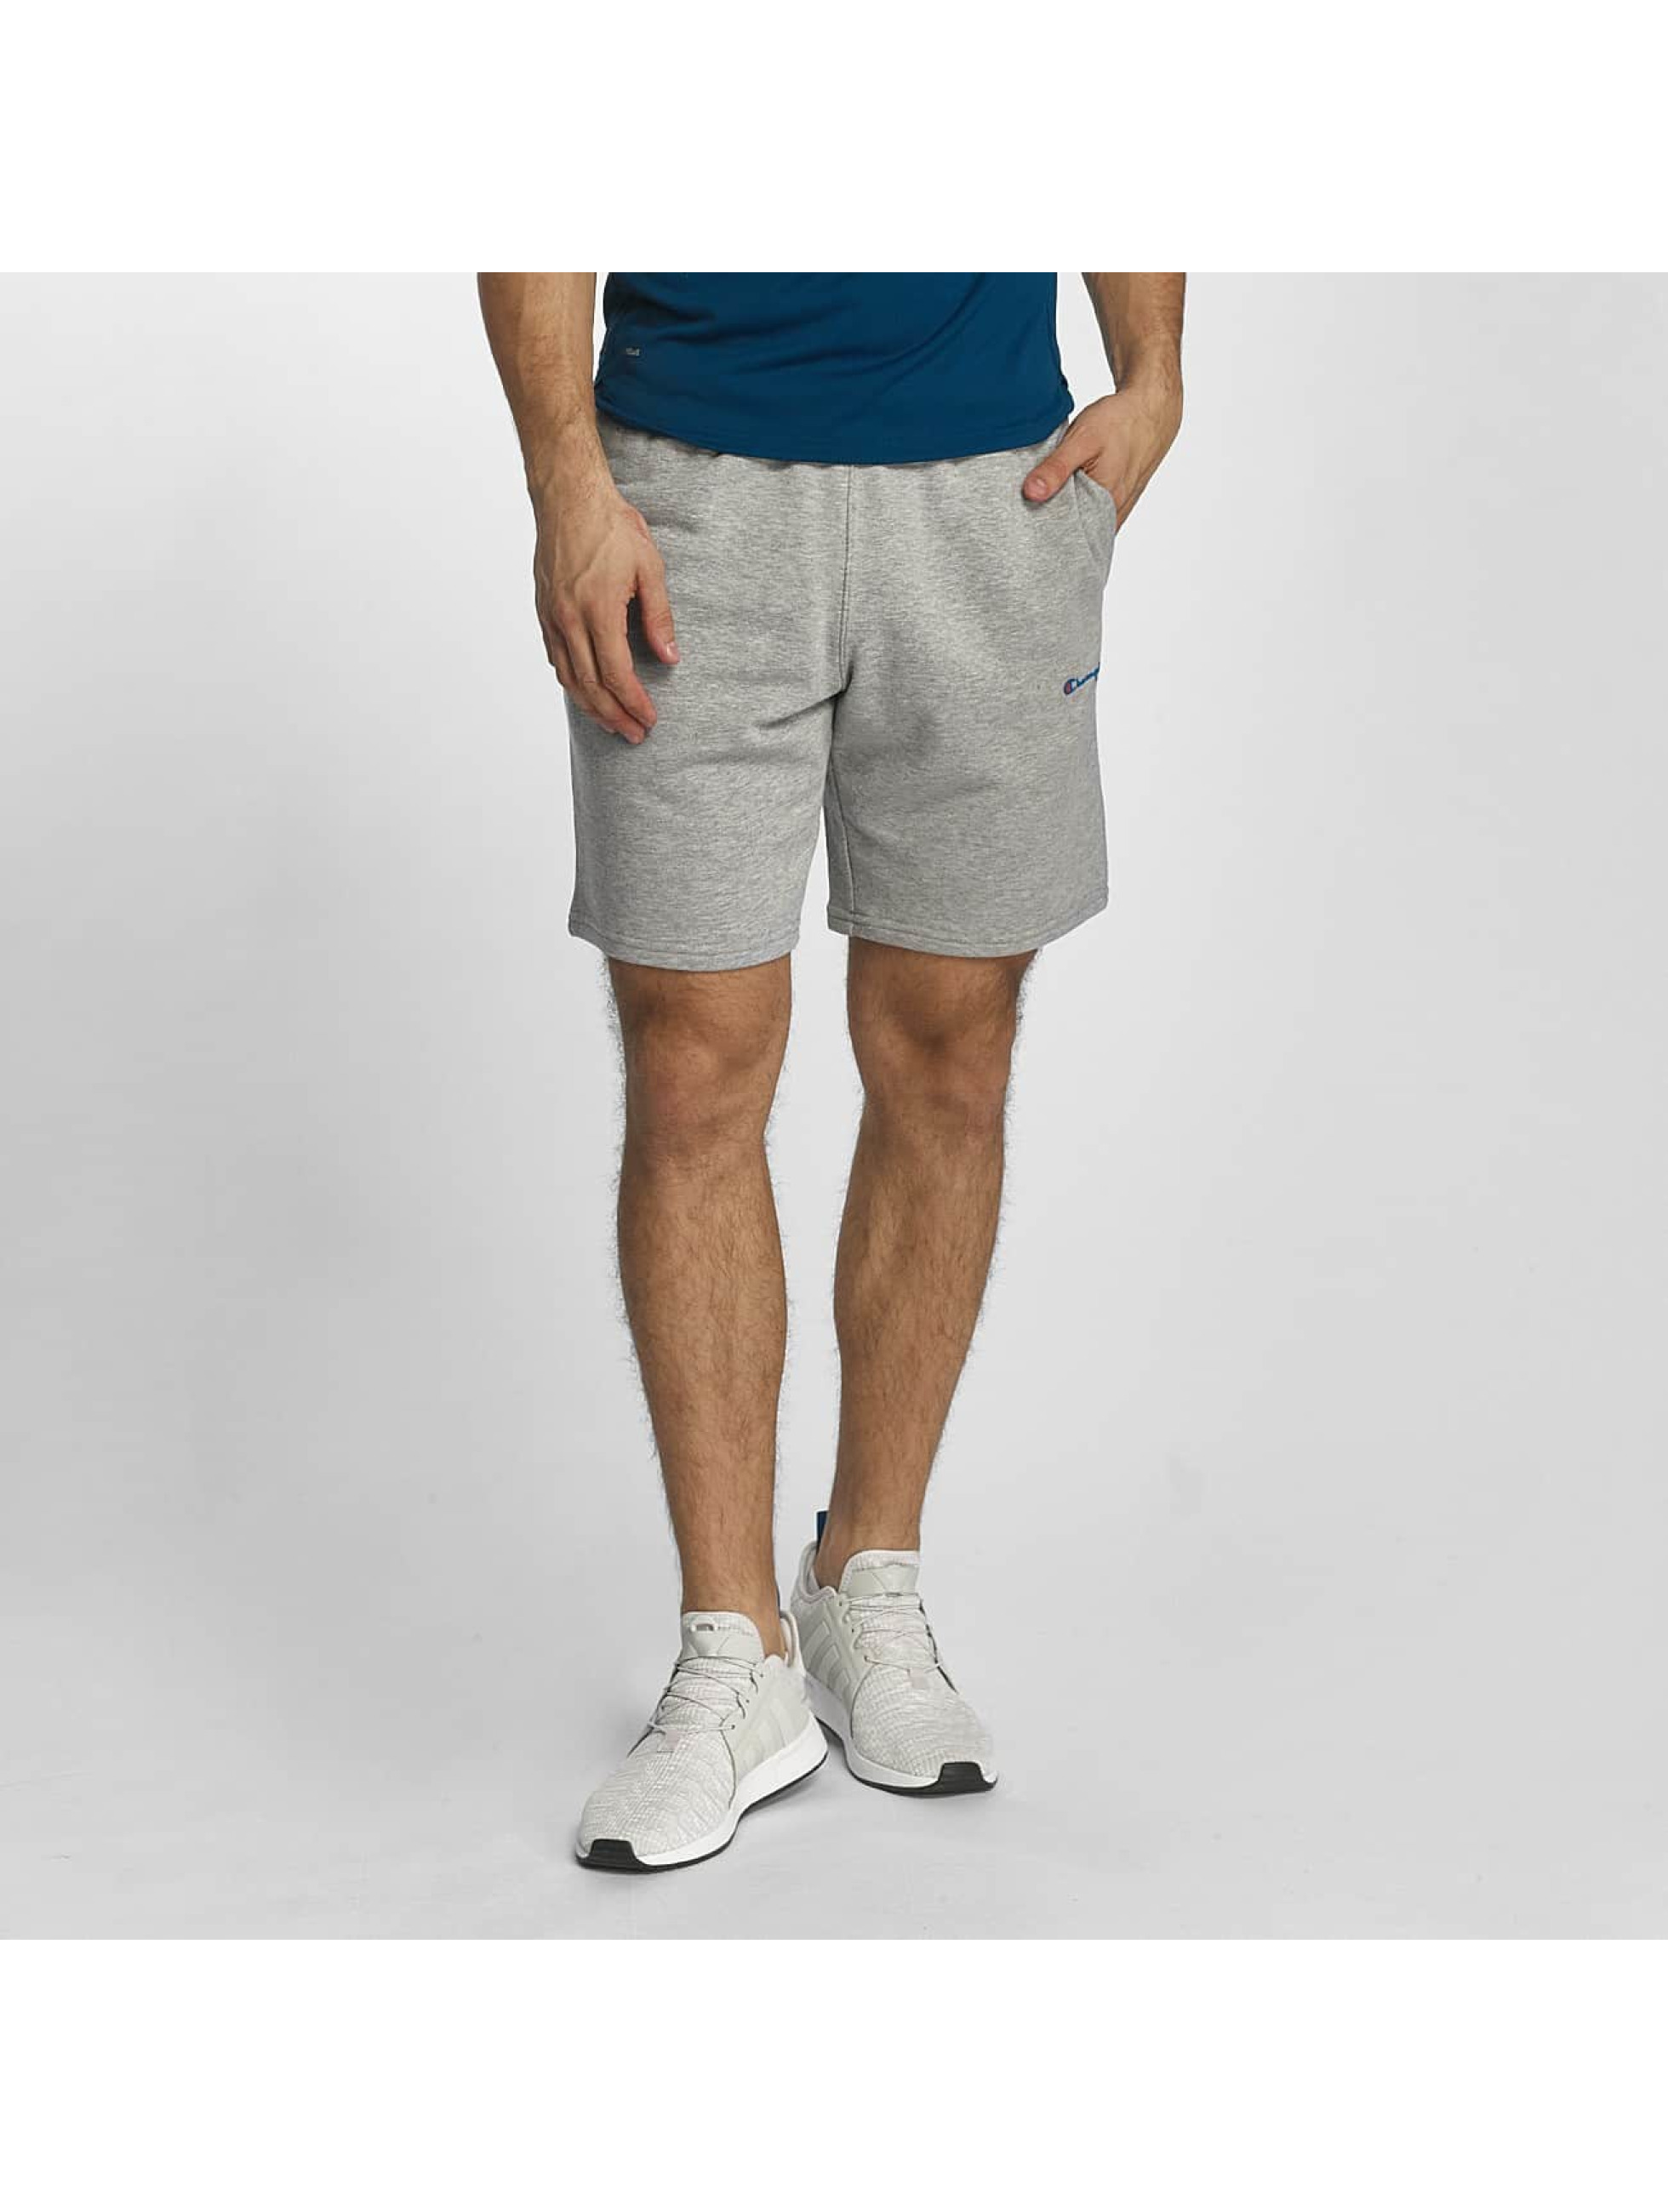 Champion Athletics Männer Shorts Bermuda in grau